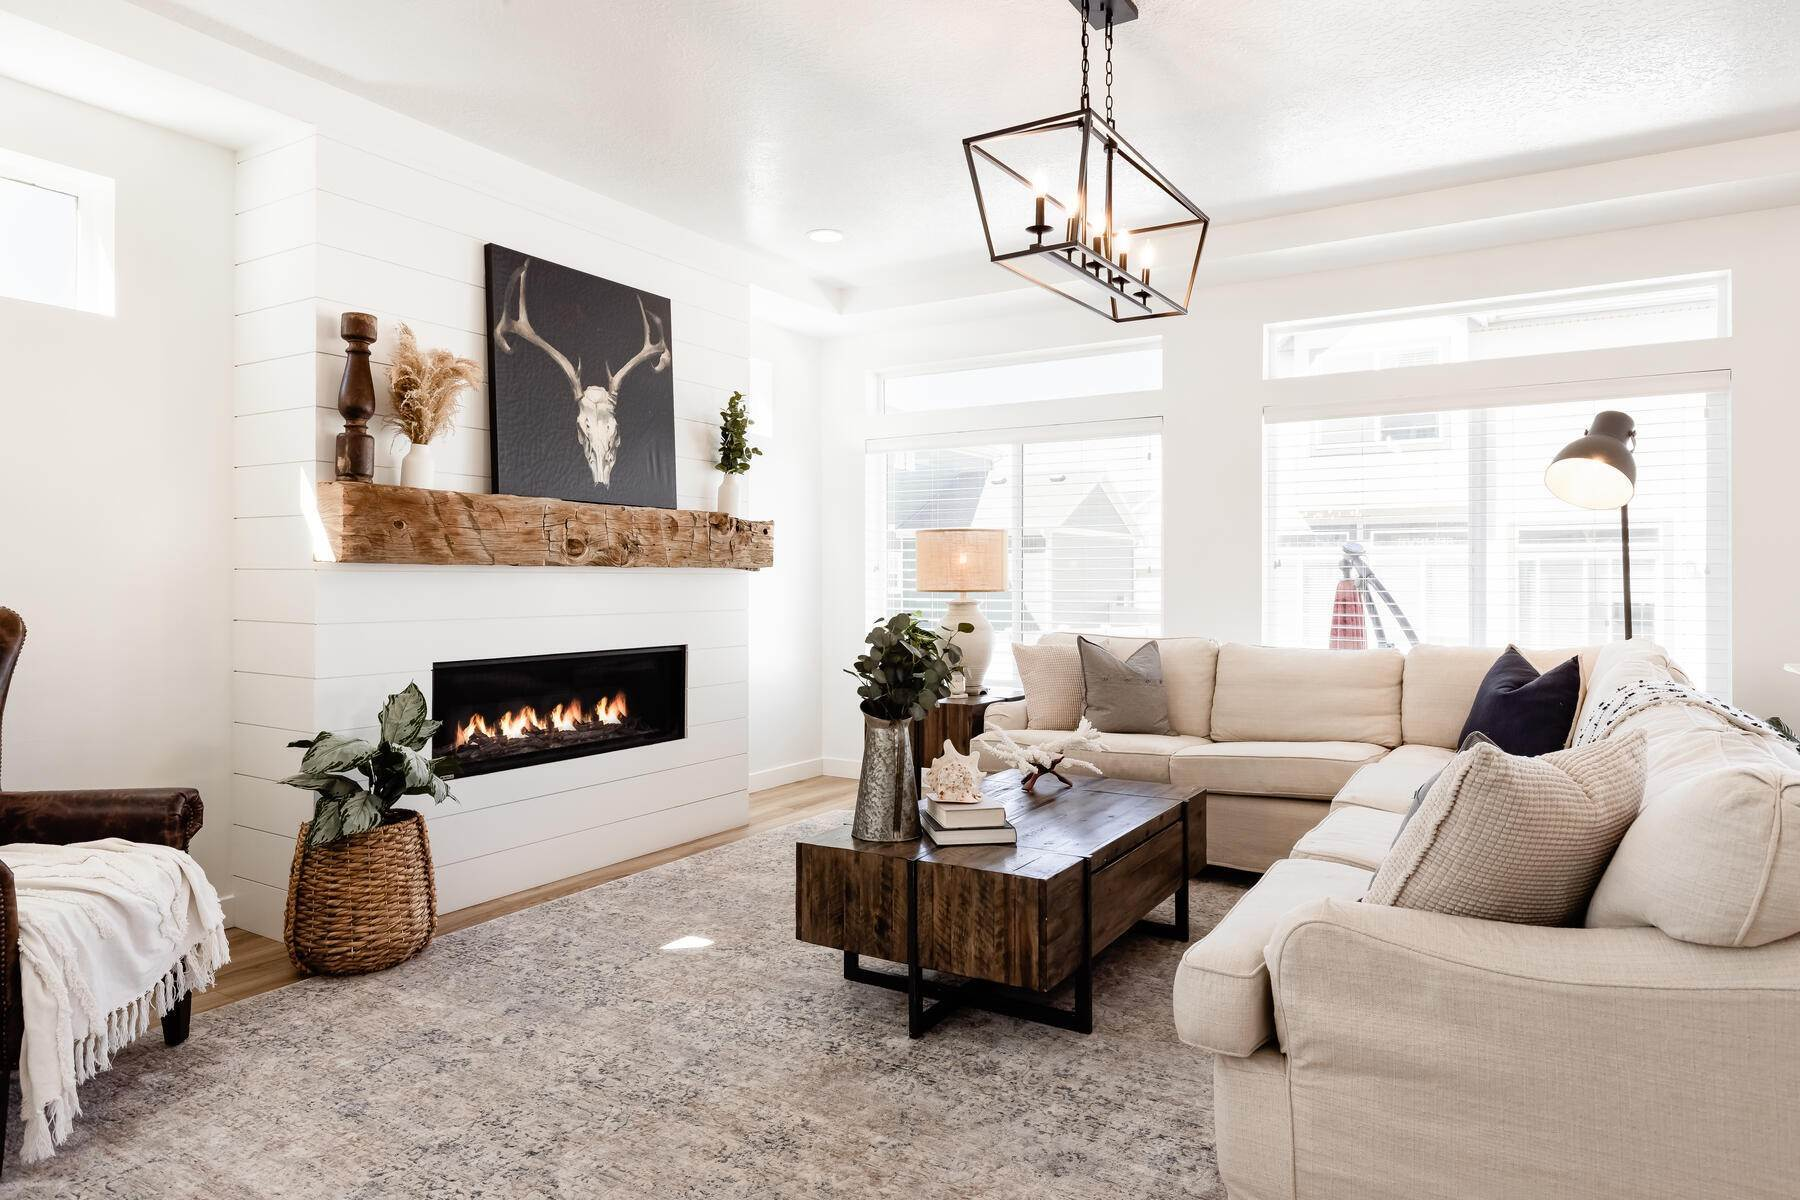 Single Family Homes for Sale at Immaculate Home in Heber with Open Concept Floor Plan 2162 South 150 East Heber, Utah 84032 United States